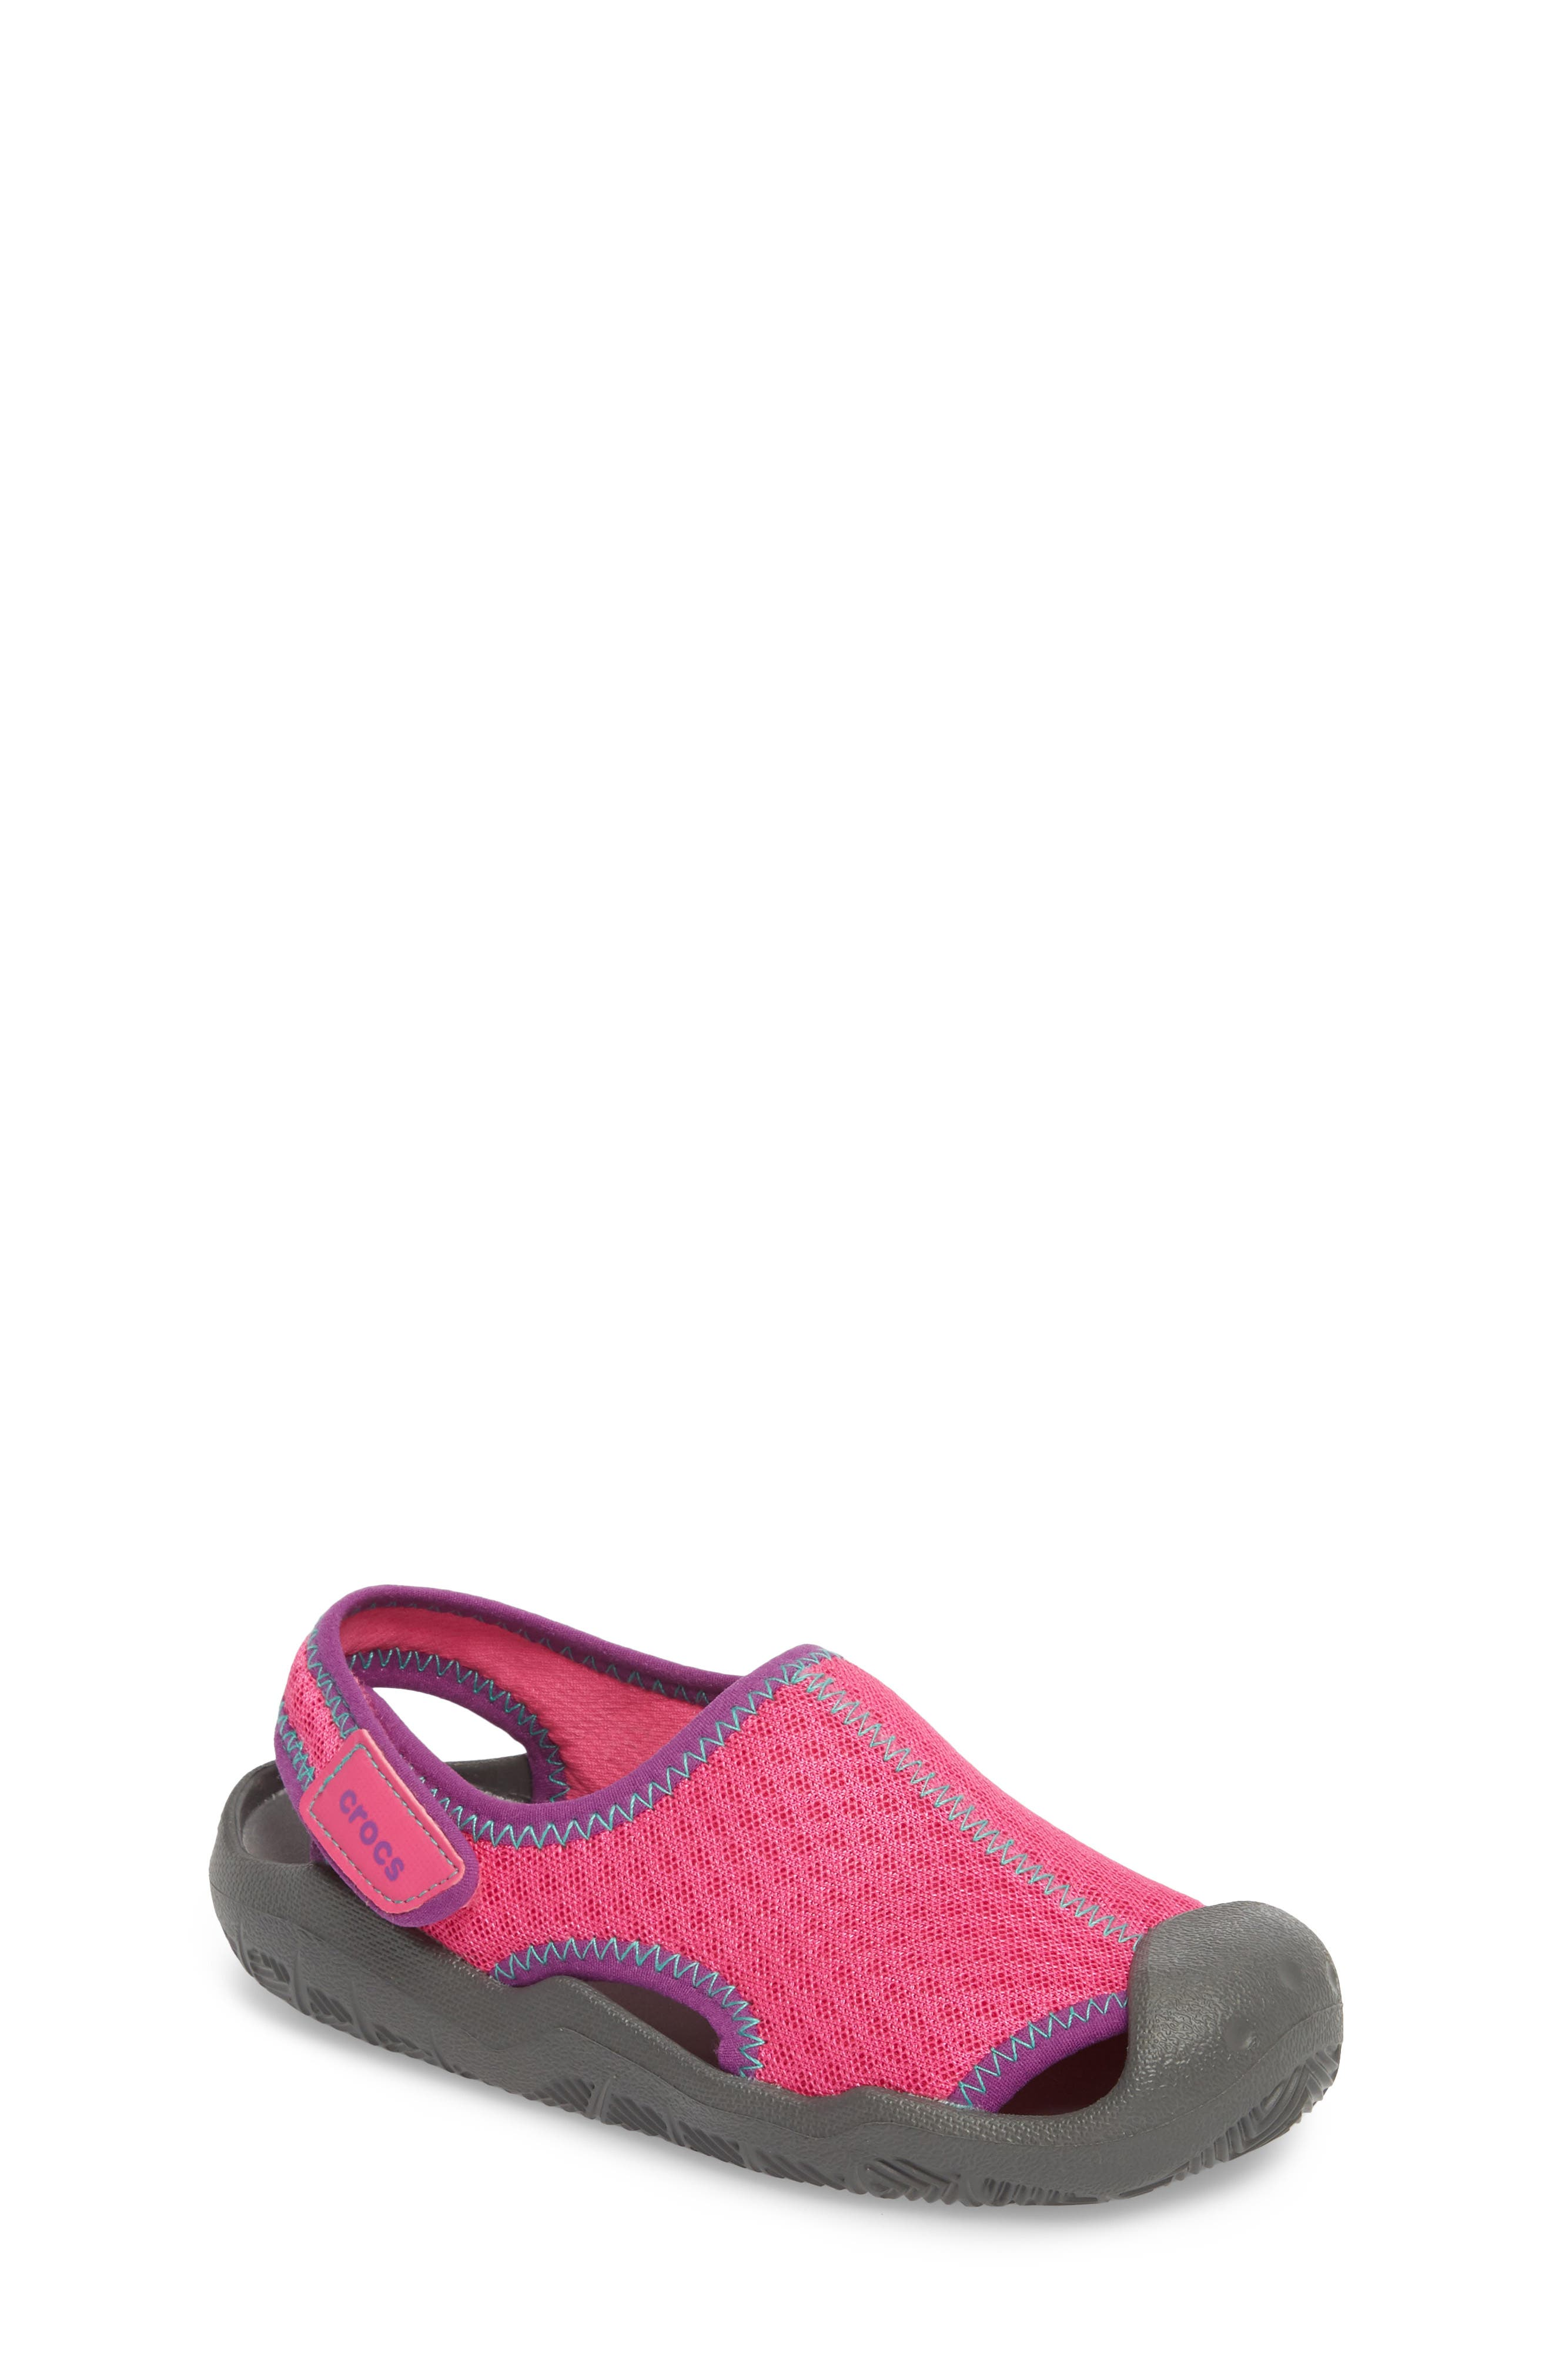 Swiftwater Sandal,                         Main,                         color, Pink